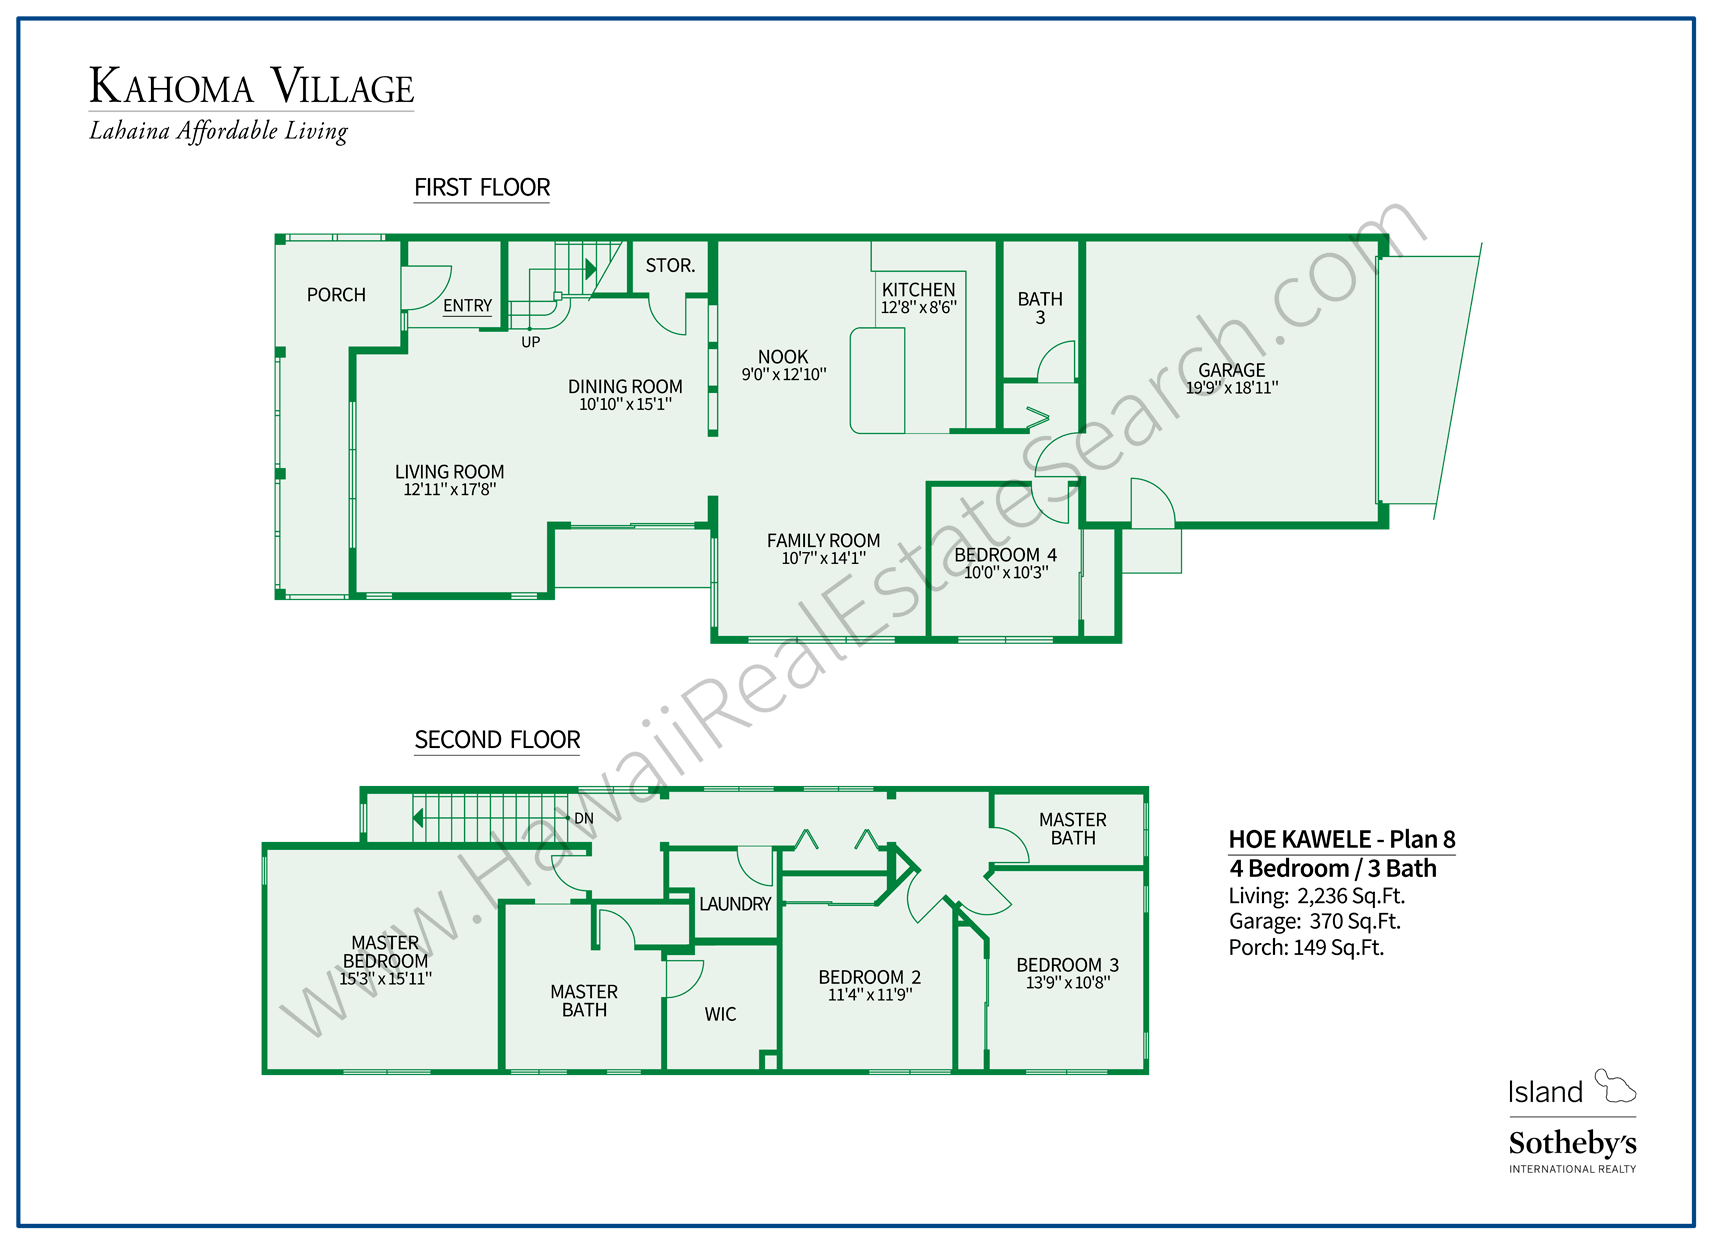 Kahoma Village Floor Plan 8